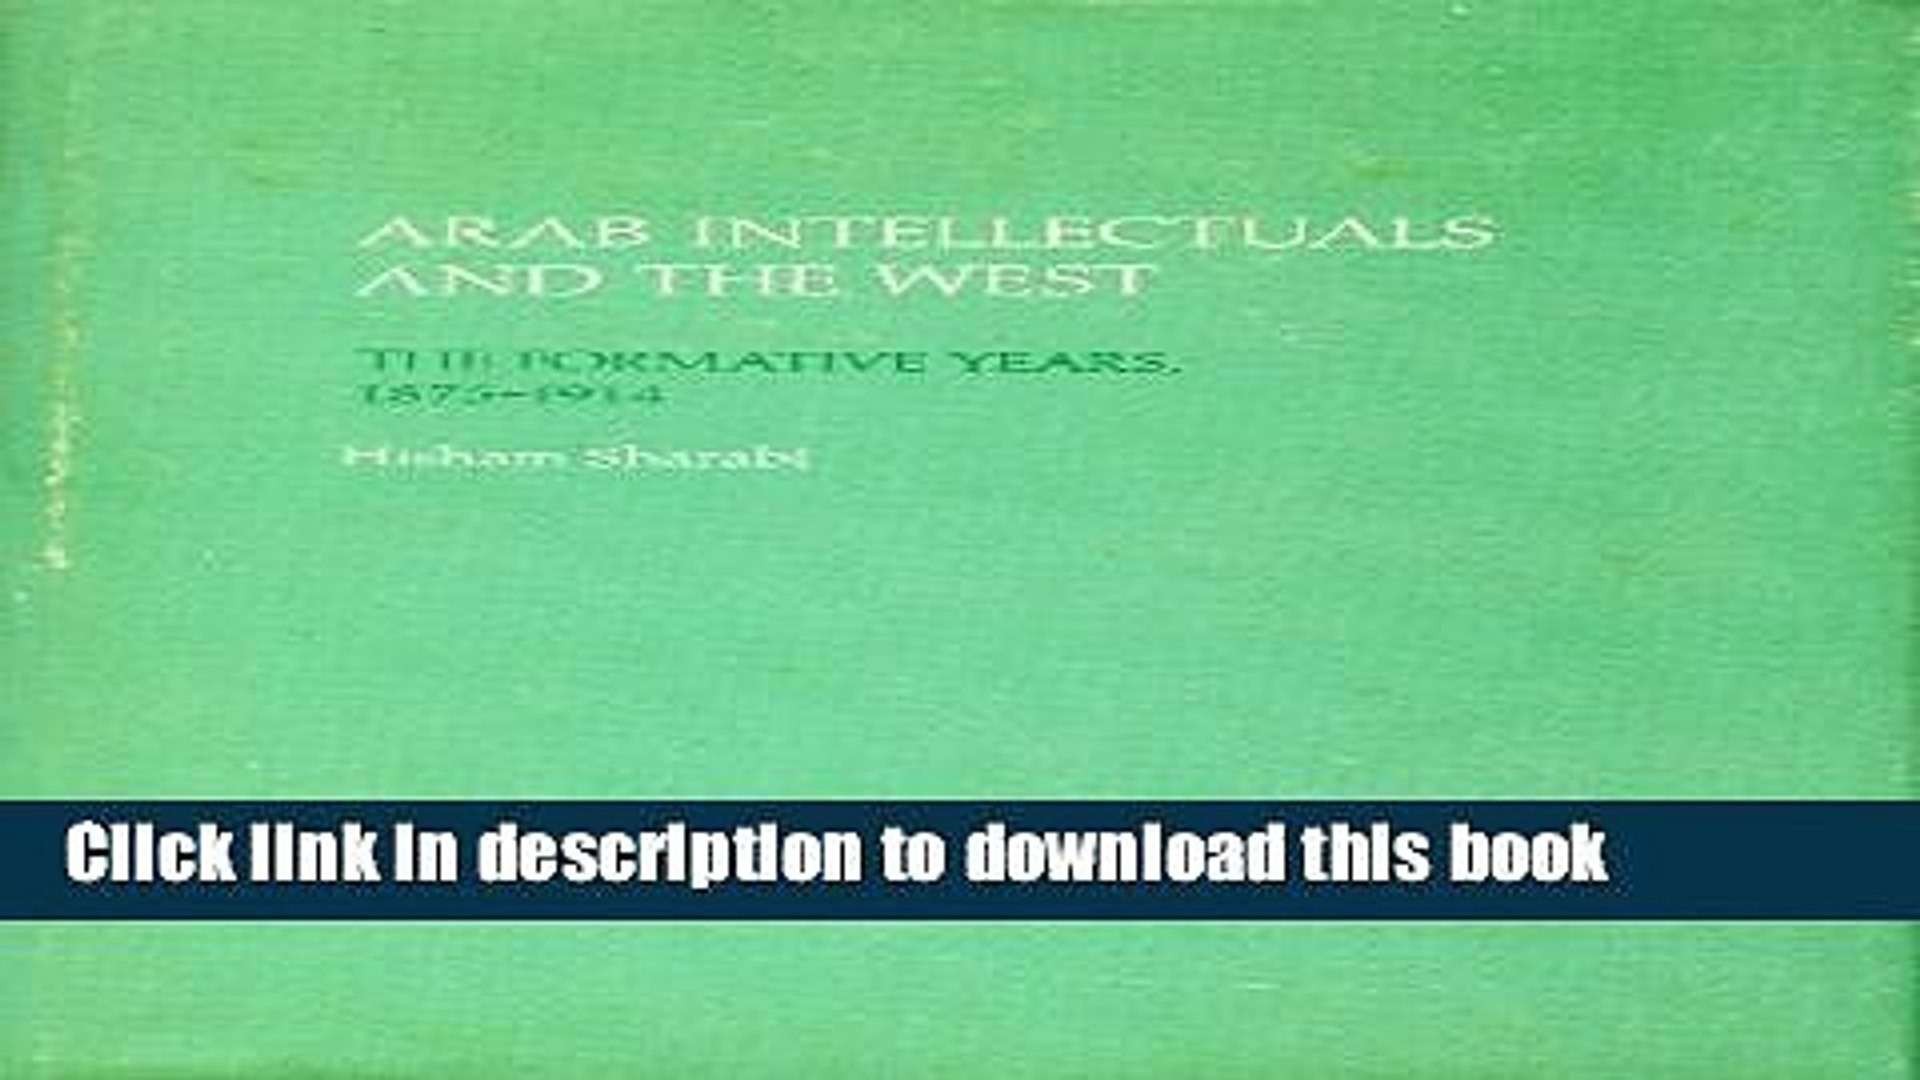 [Popular Books] Arab Intellectuals and the West: The Formative Years, 1875-1914 Full Online